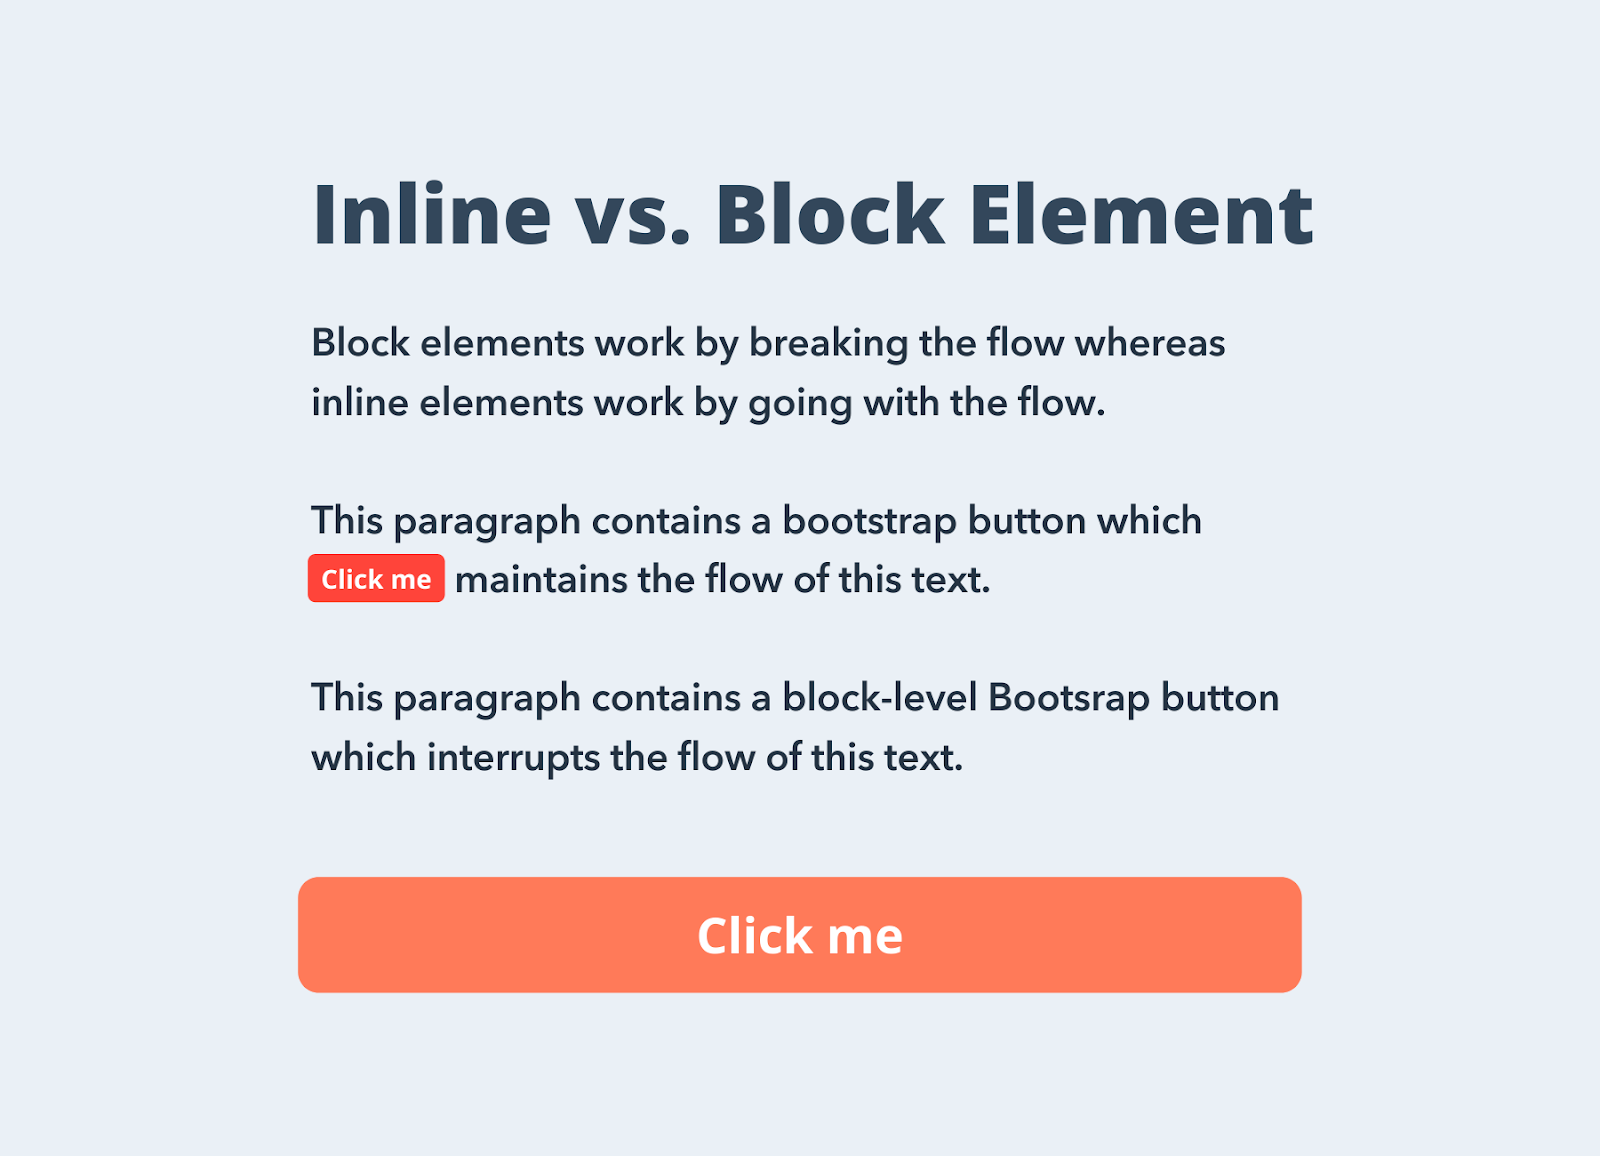 Inline vs. Block elements with bootstrap buttons